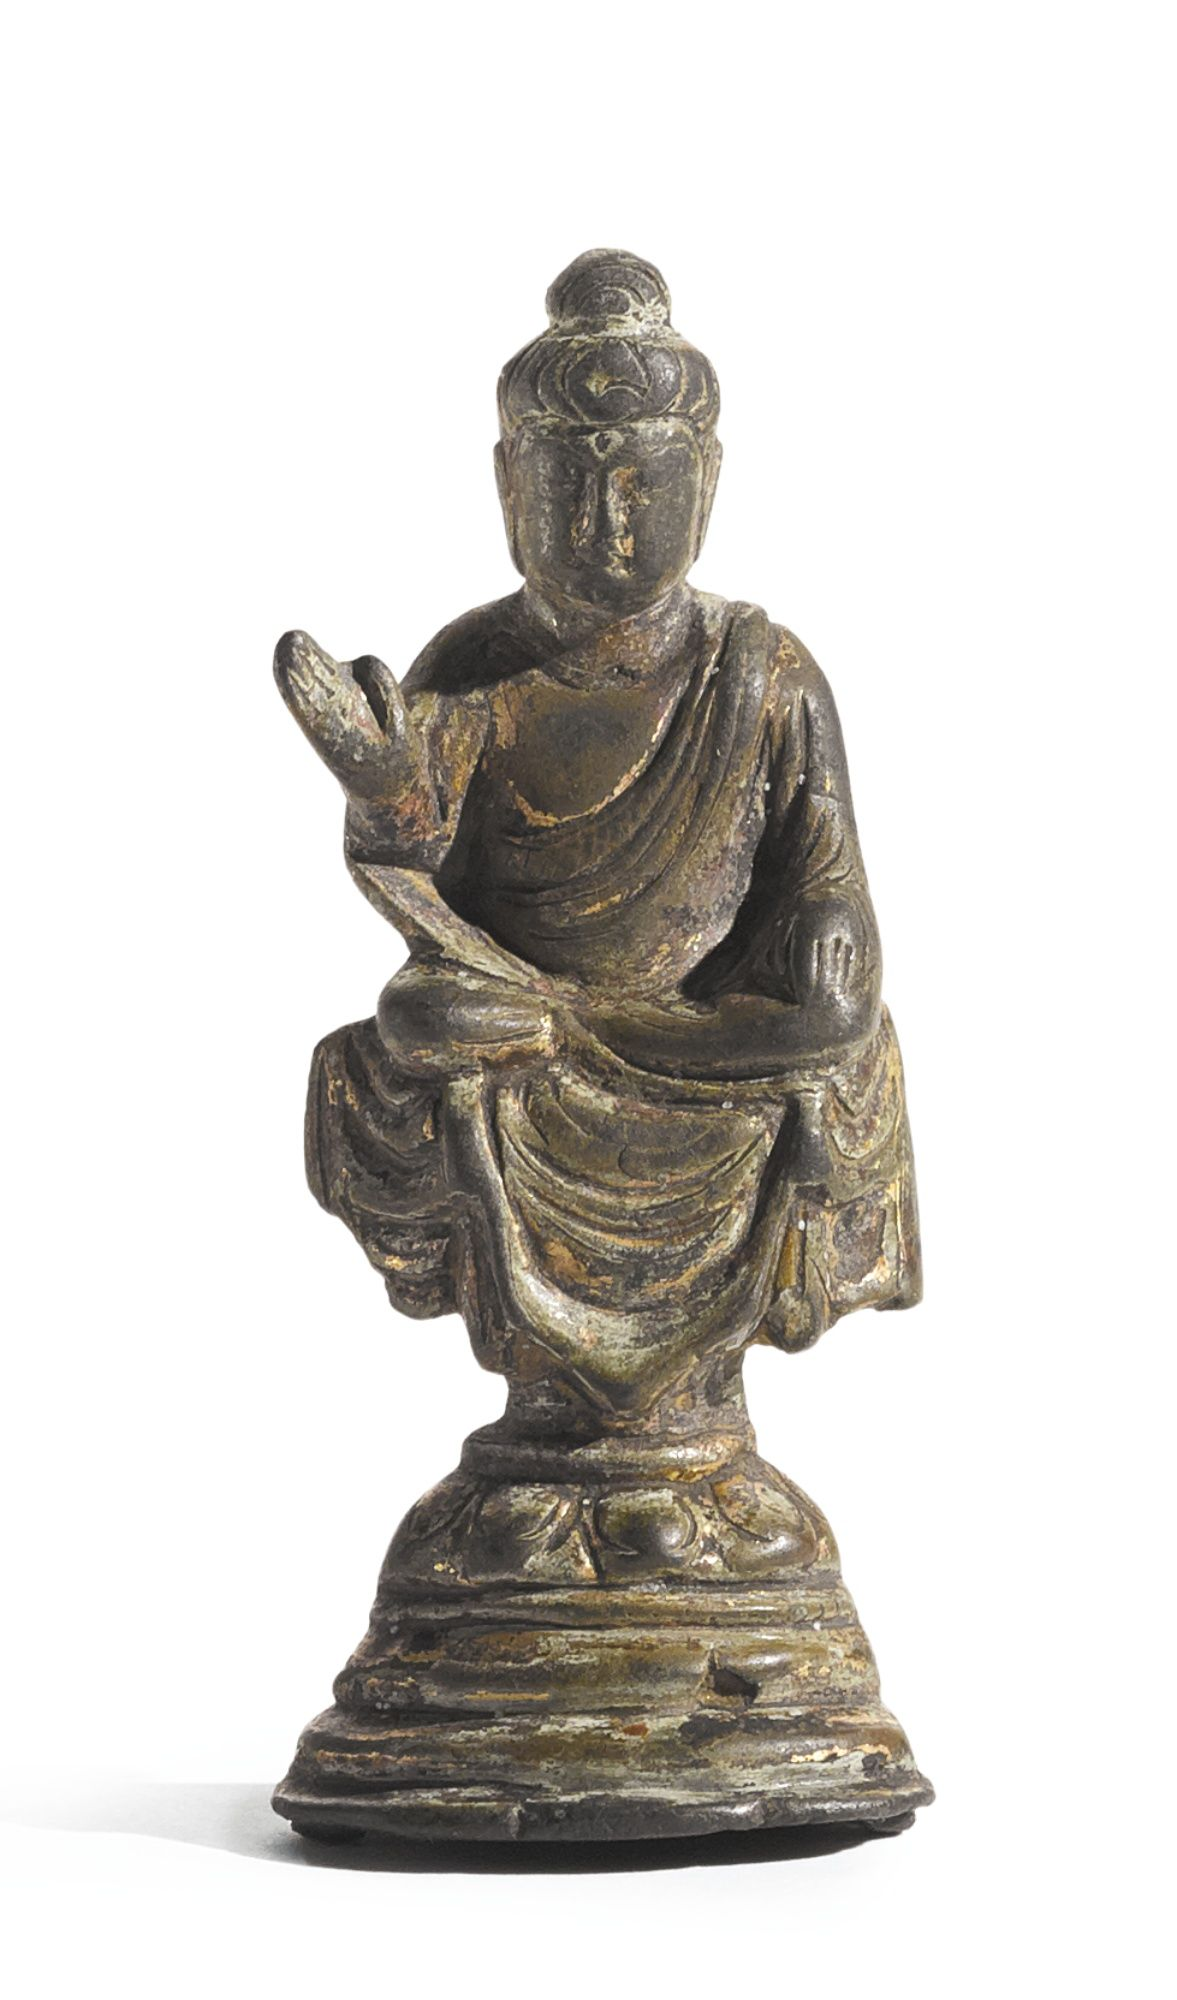 A SMALL BRONZE FIGURE OF BUDDHA - CHINA, TANG DYNASTY